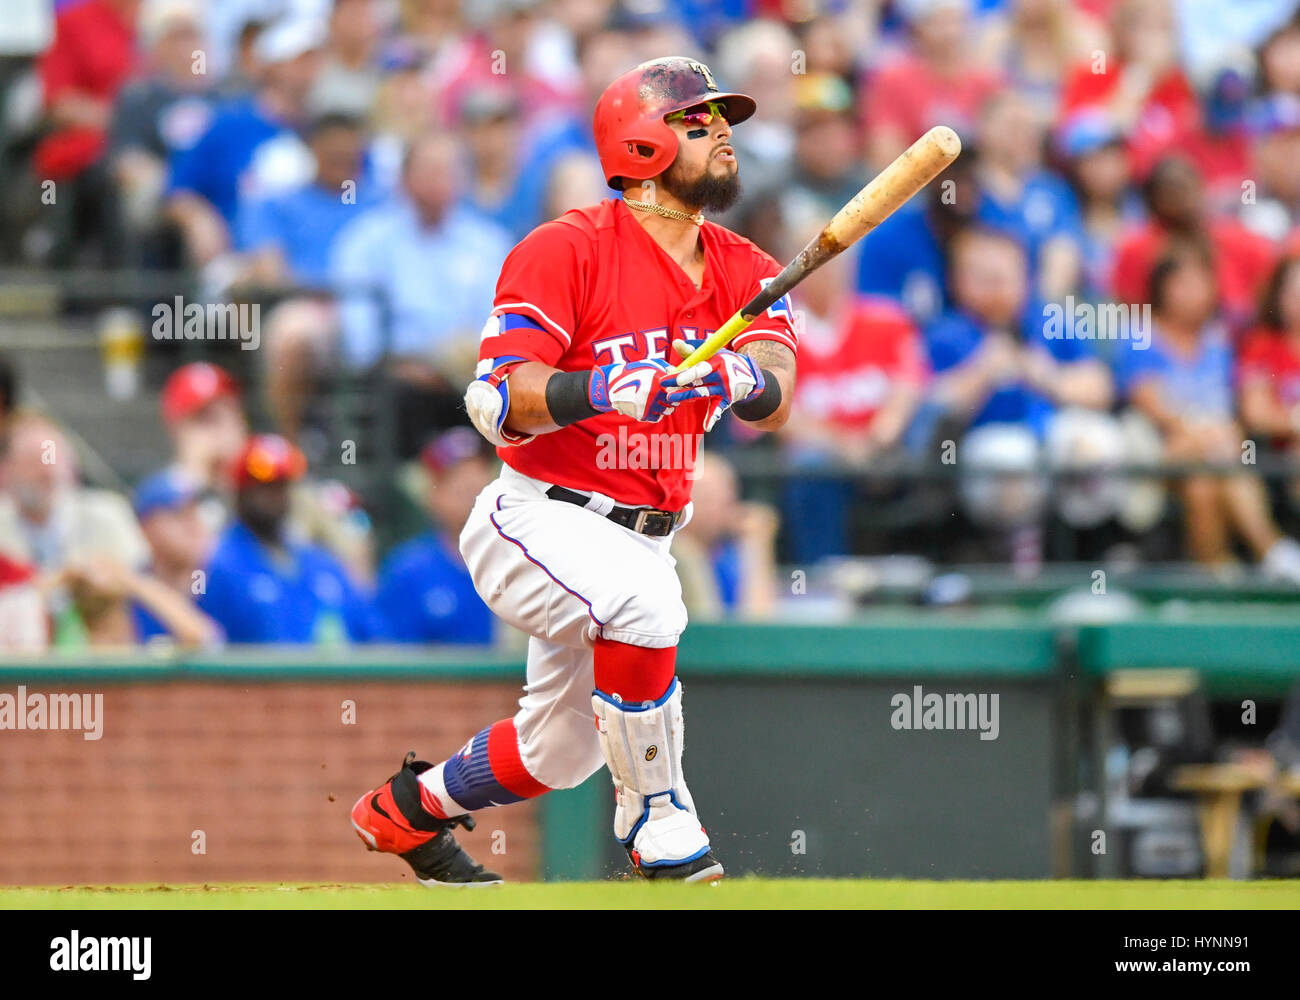 d575616f7 rougned odor 12 jersey | Coupon code